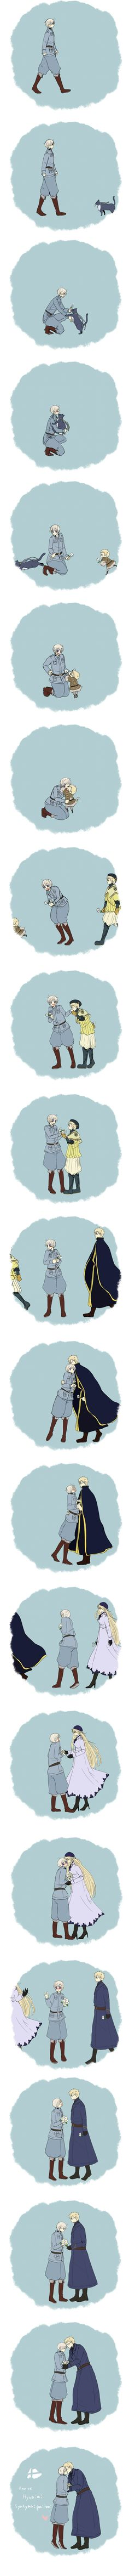 Tags: Fanart, Axis Powers: Hetalia, Sweden, Finland, Comic, Pixiv, Nordic Countries, Sira, Nekotalia, Nyotalia, Sweden (Female)